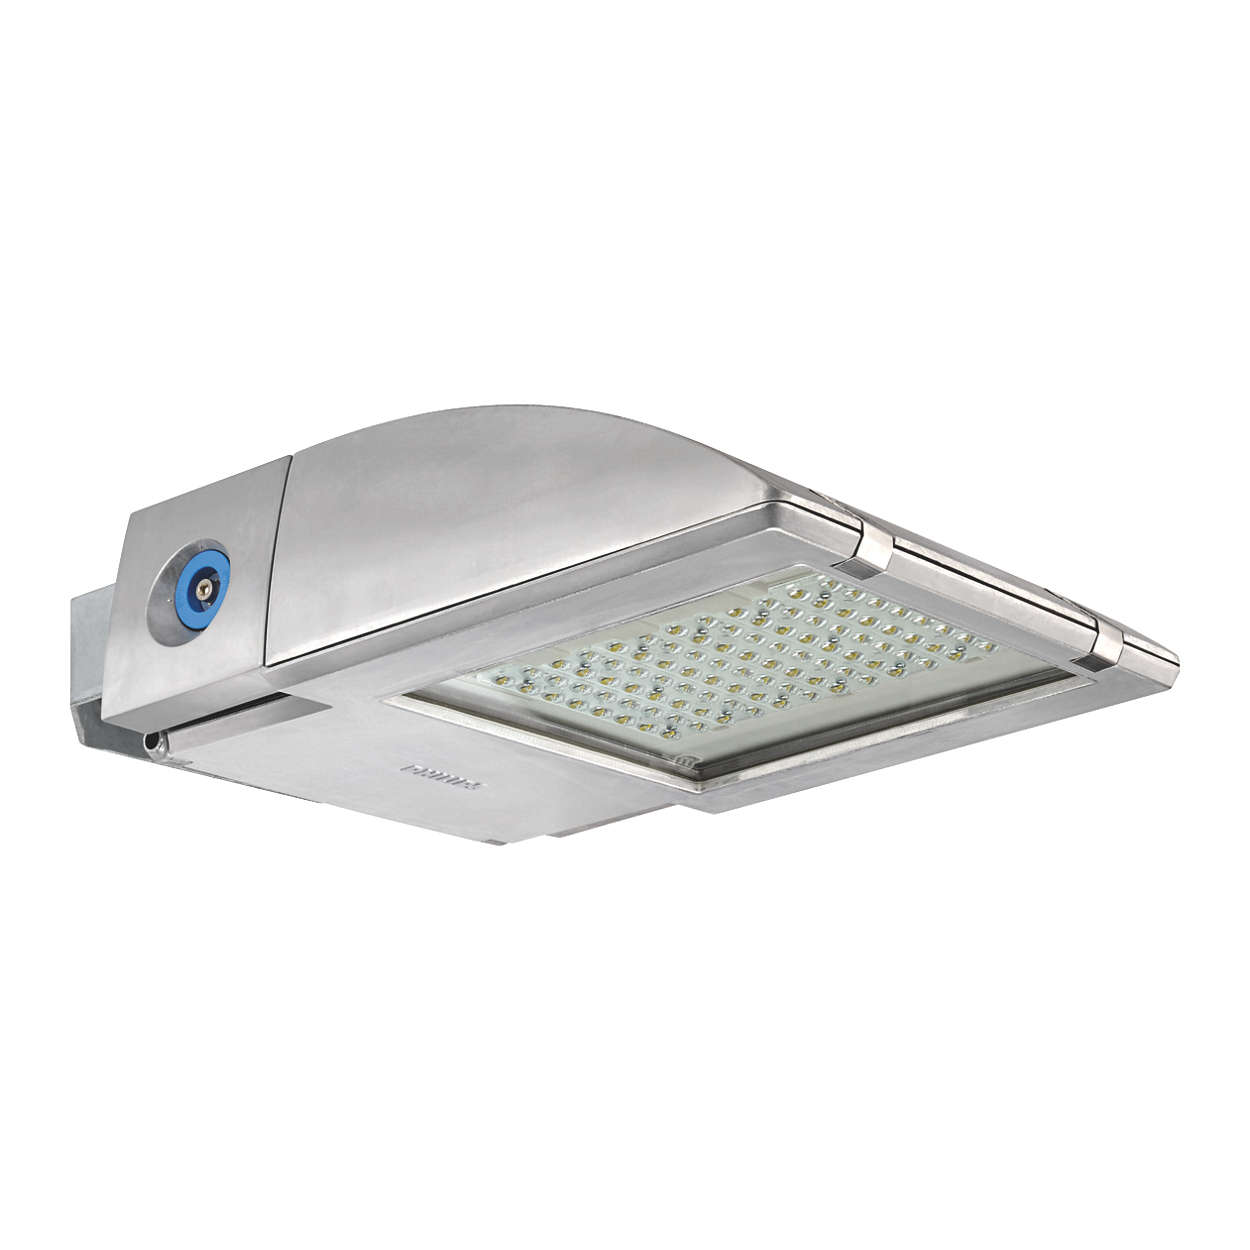 OptiFlood LED – all you need for area lighting